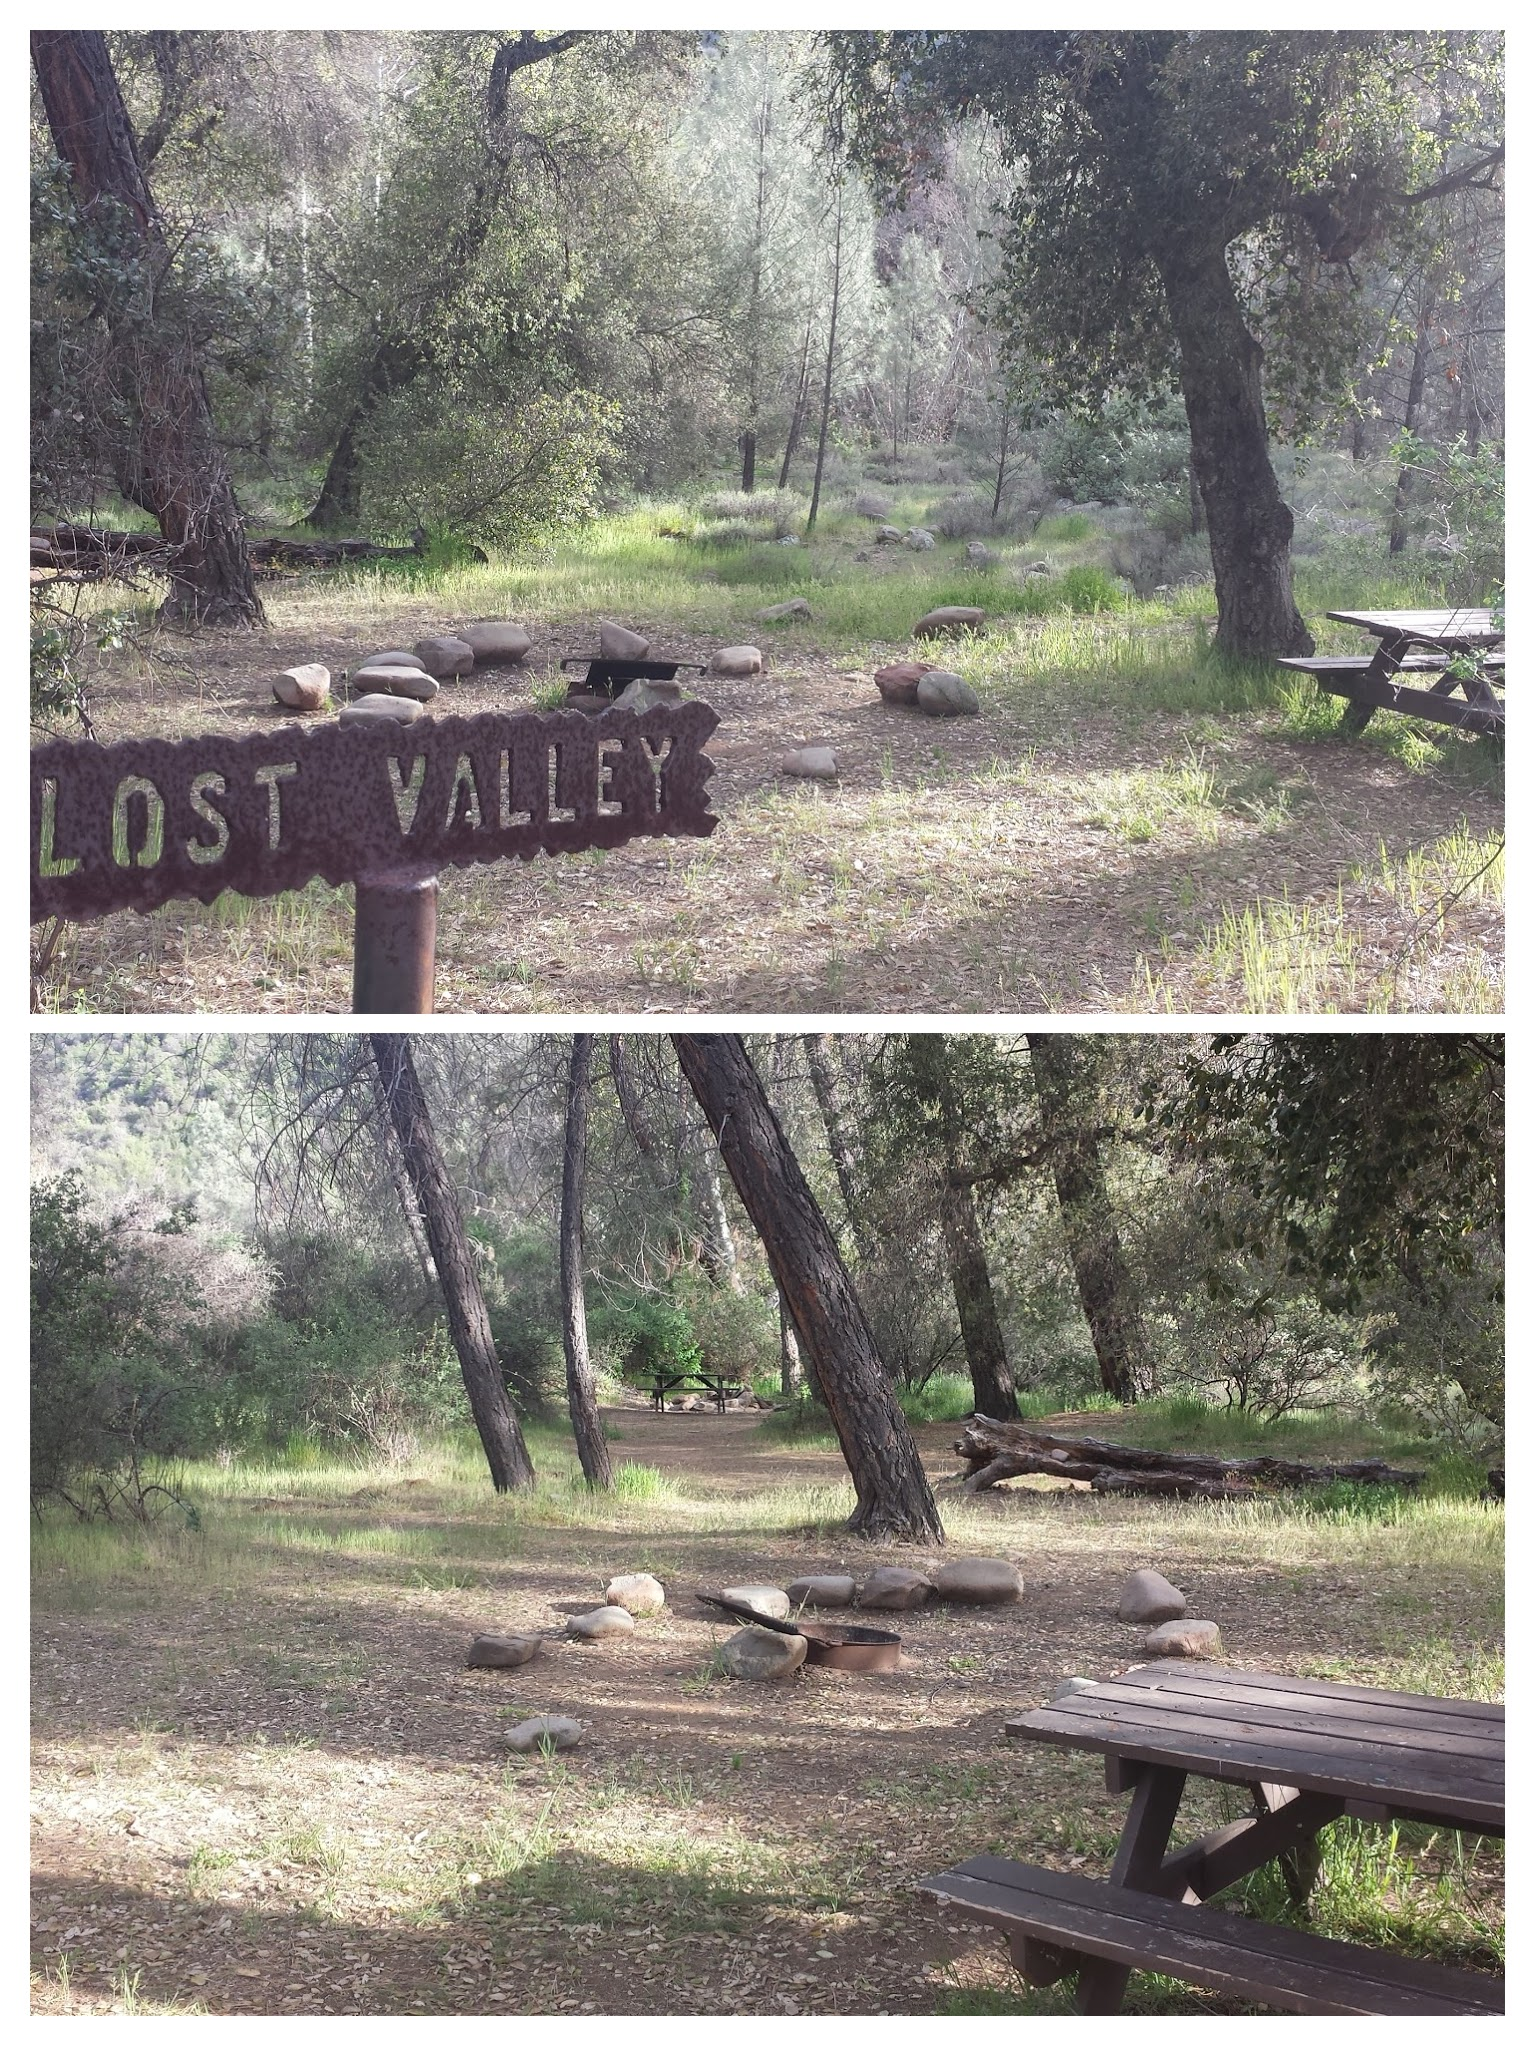 Lost Valley Camp along Manzana Trail.